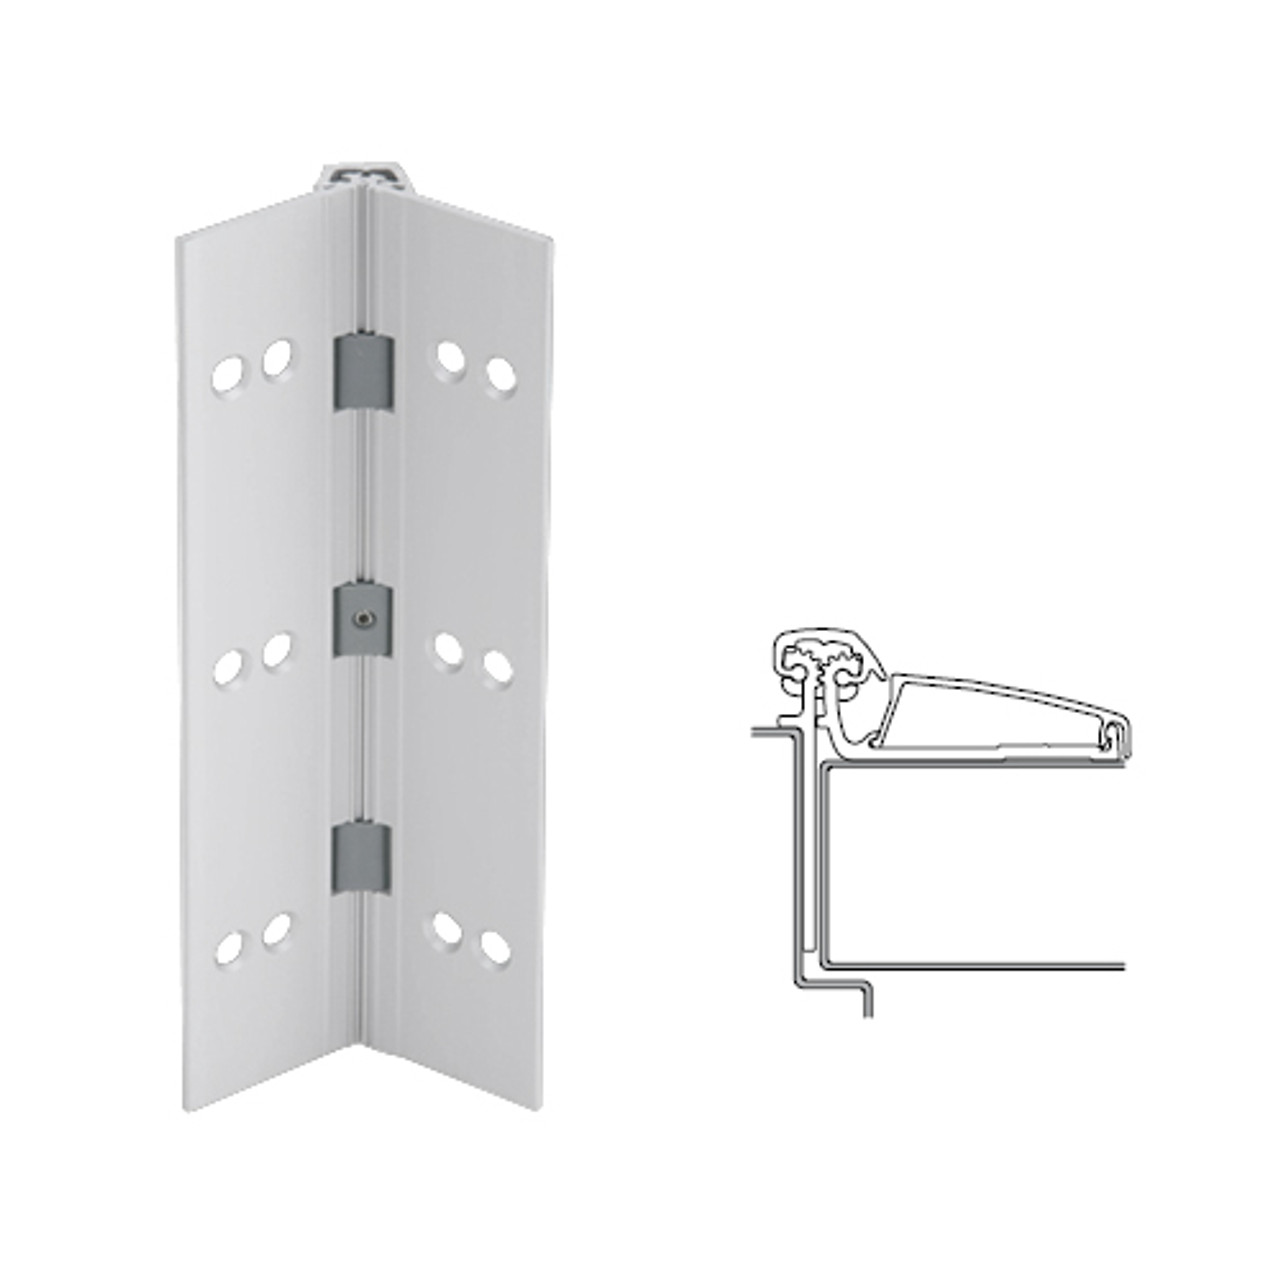 046XY-US28-83 IVES Adjustable Half Surface Continuous Geared Hinges in Satin Aluminum